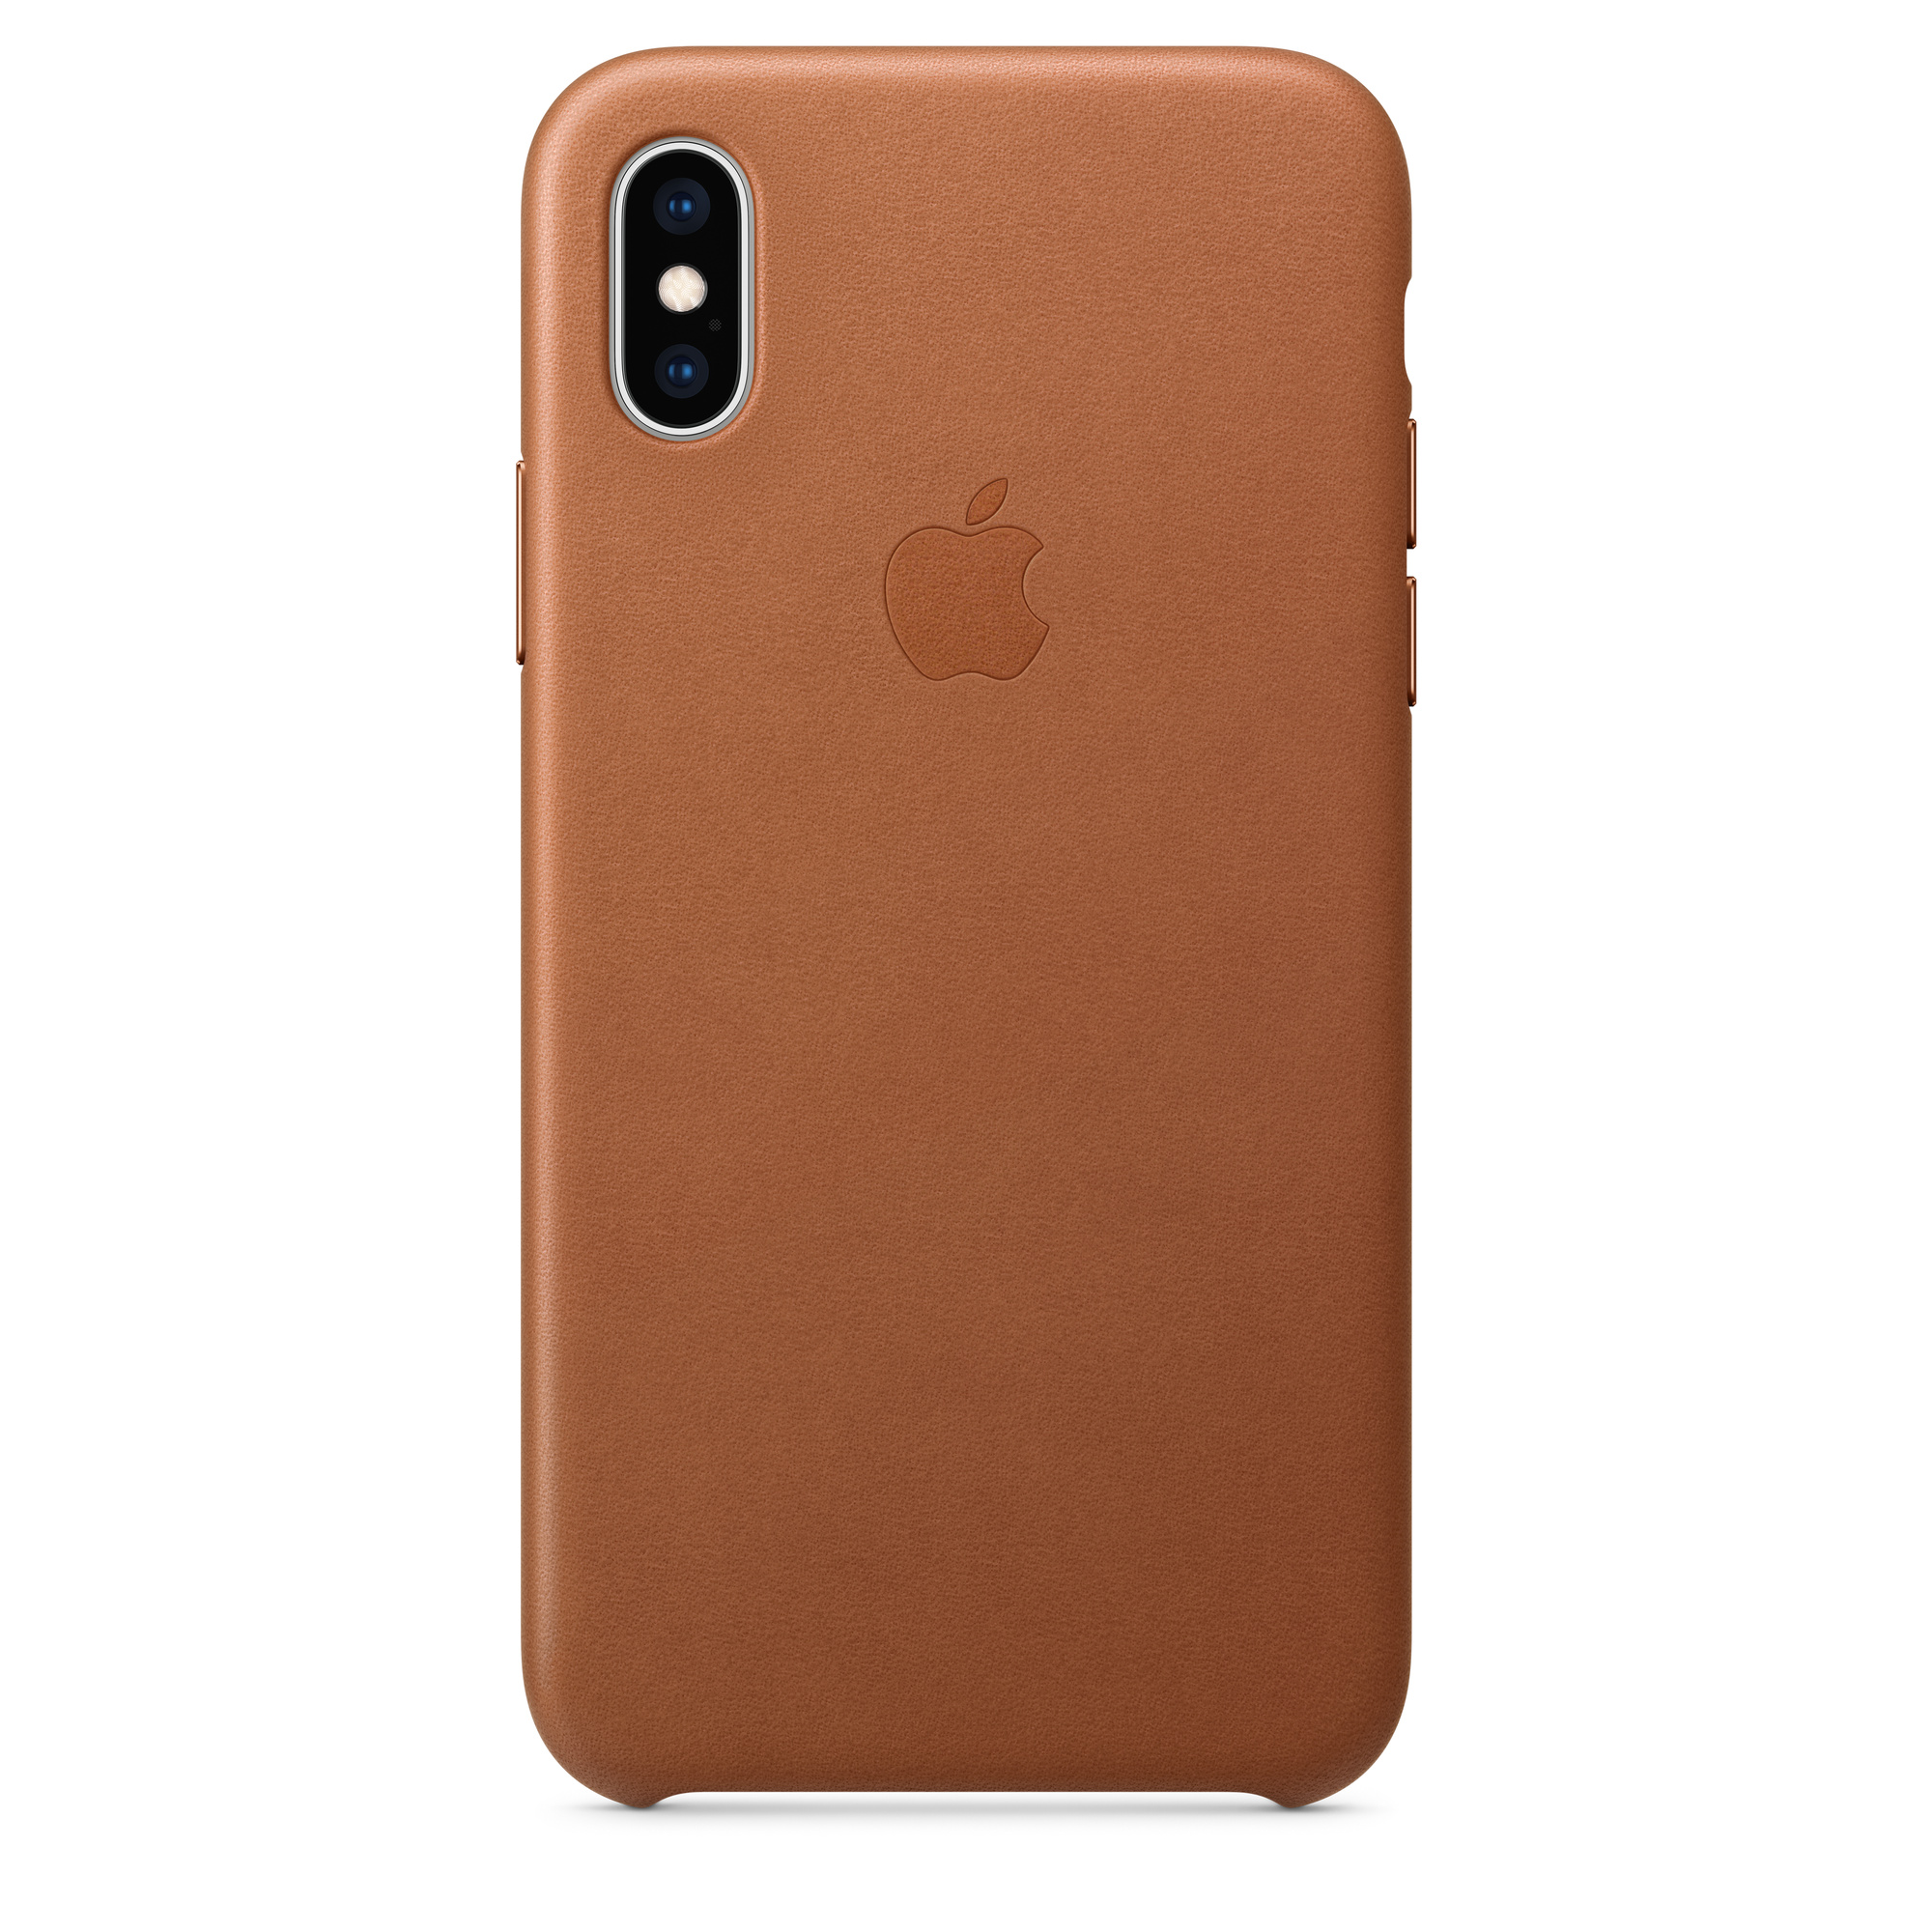 cheap for discount 3adf1 c7db7 iPhone XS Leather Case — Saddle Brown